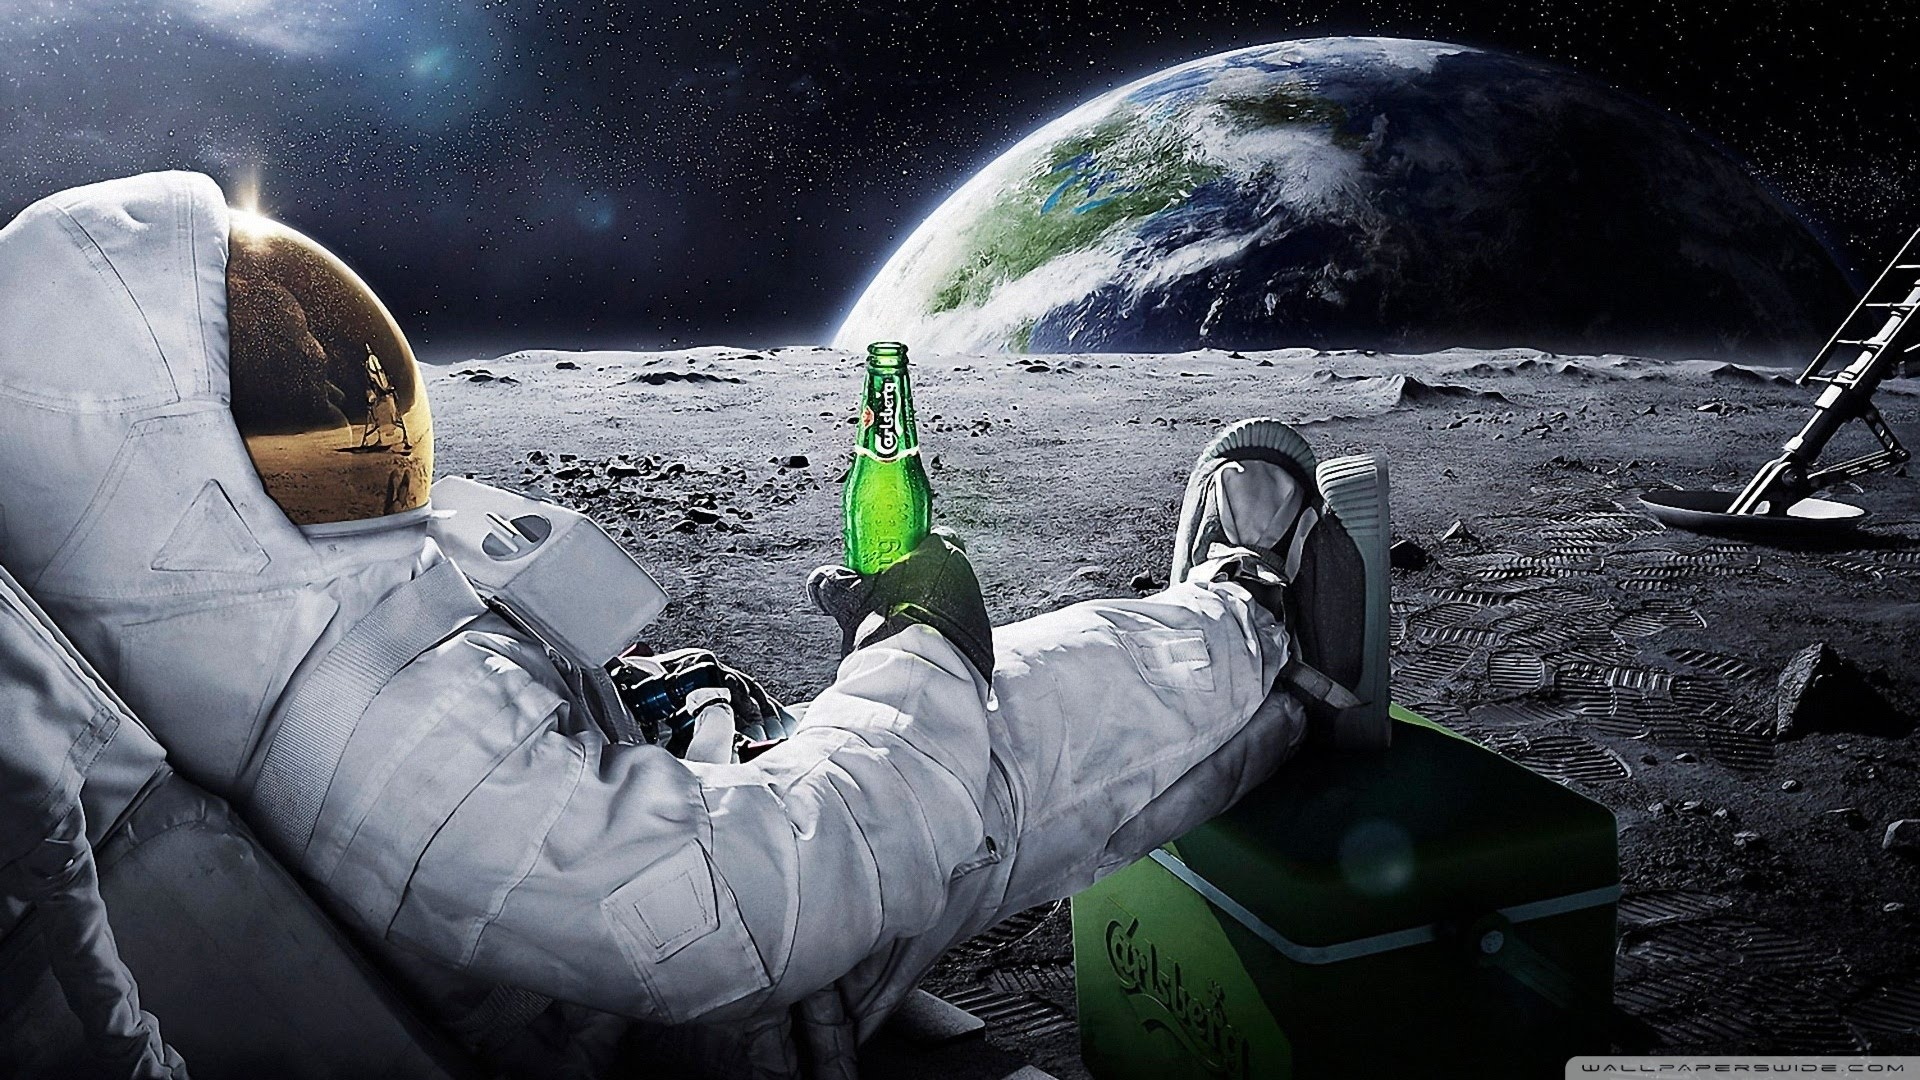 Inspirational Story – MAN IN SPACE